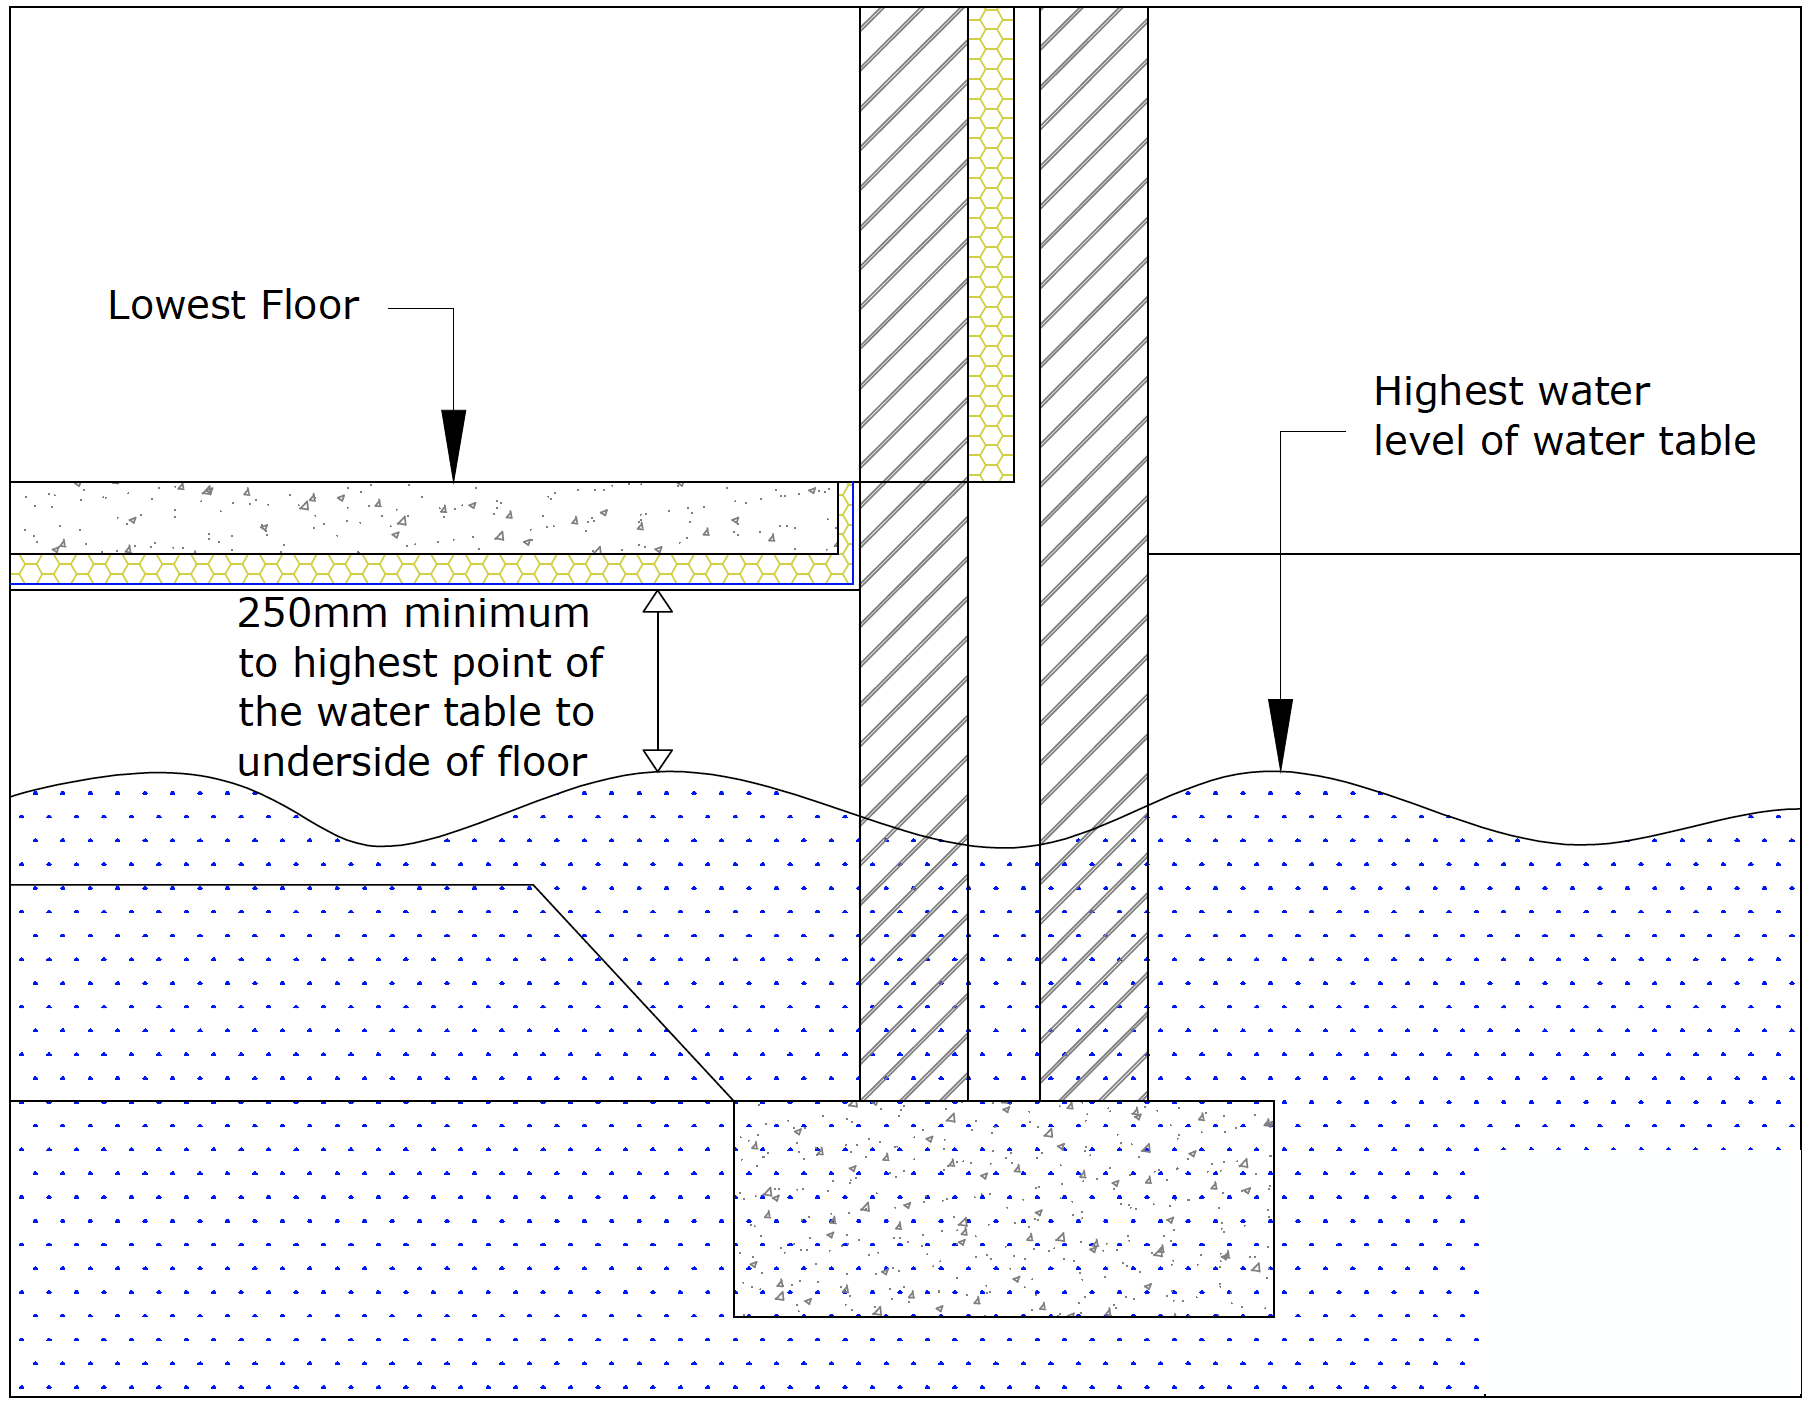 Diagram A11: Distance from water table to lower floor level